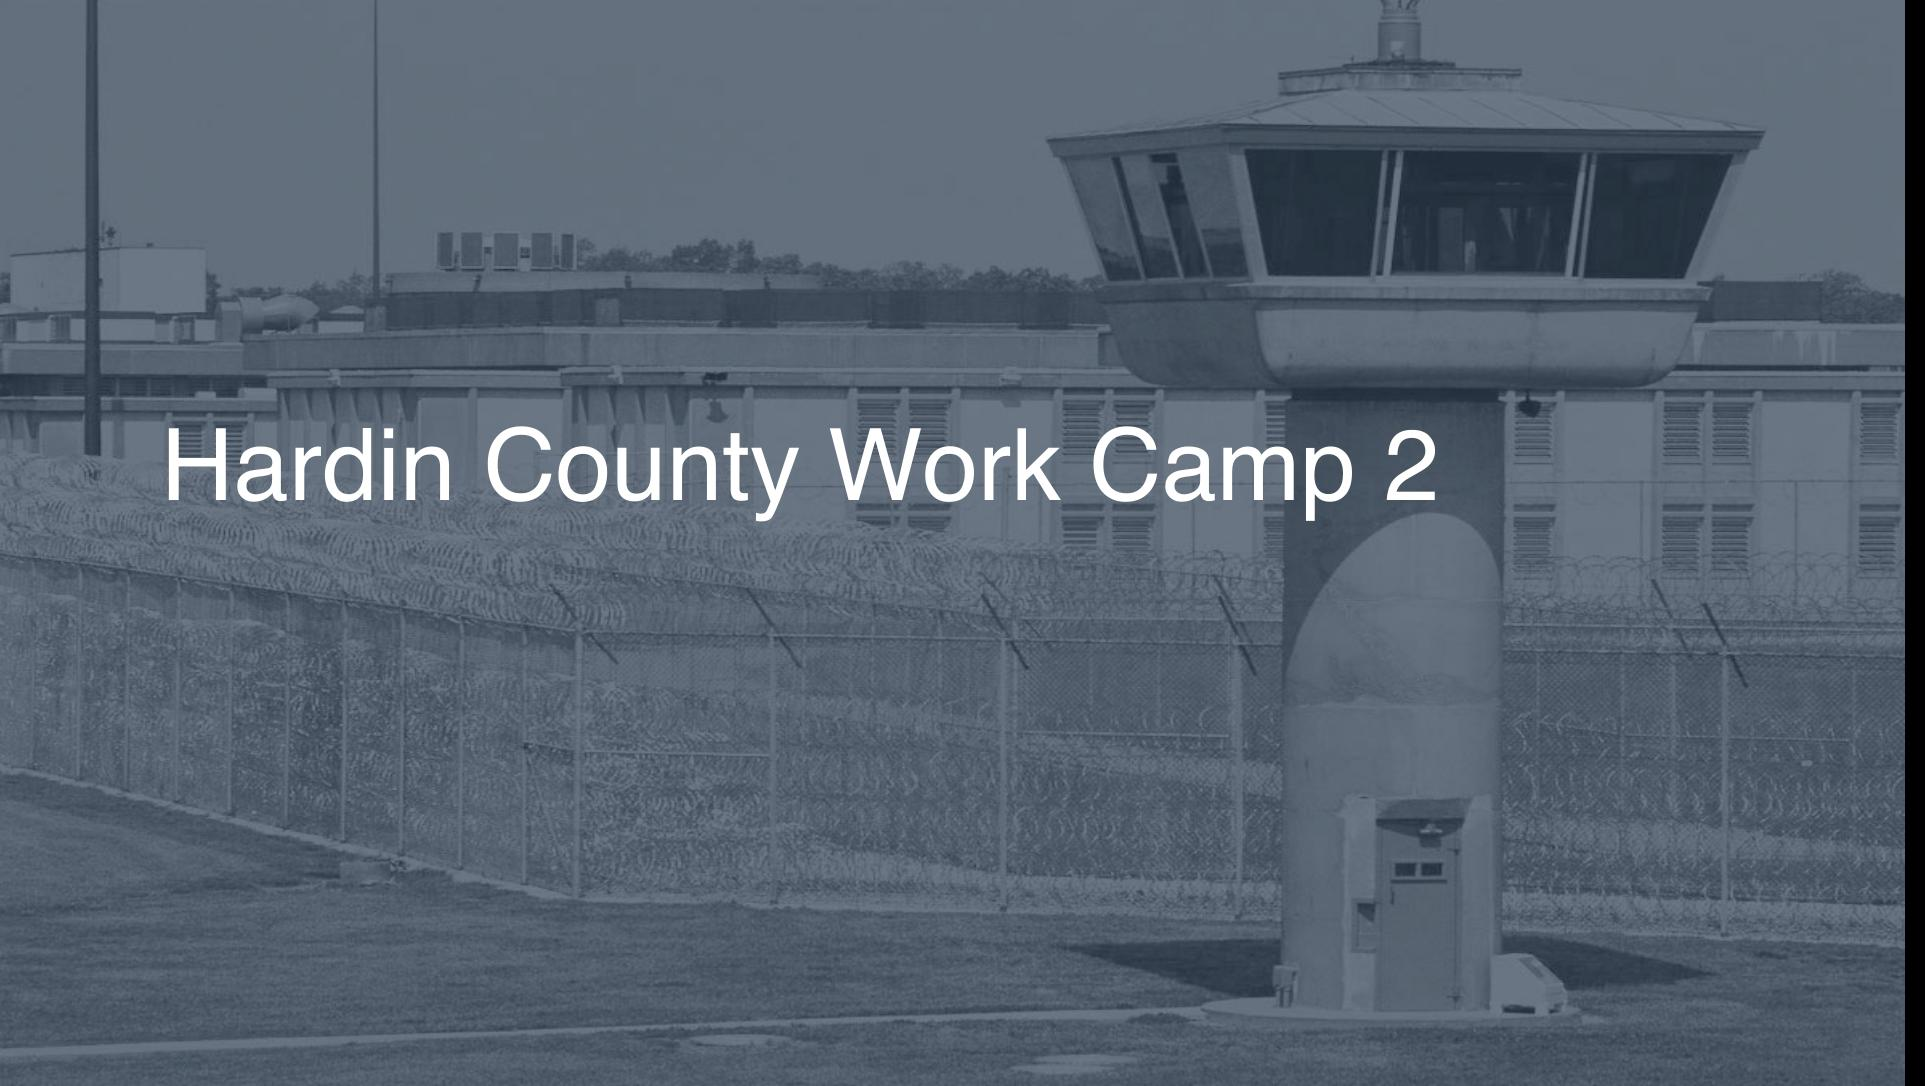 Hardin County Work Camp correctional facility picture